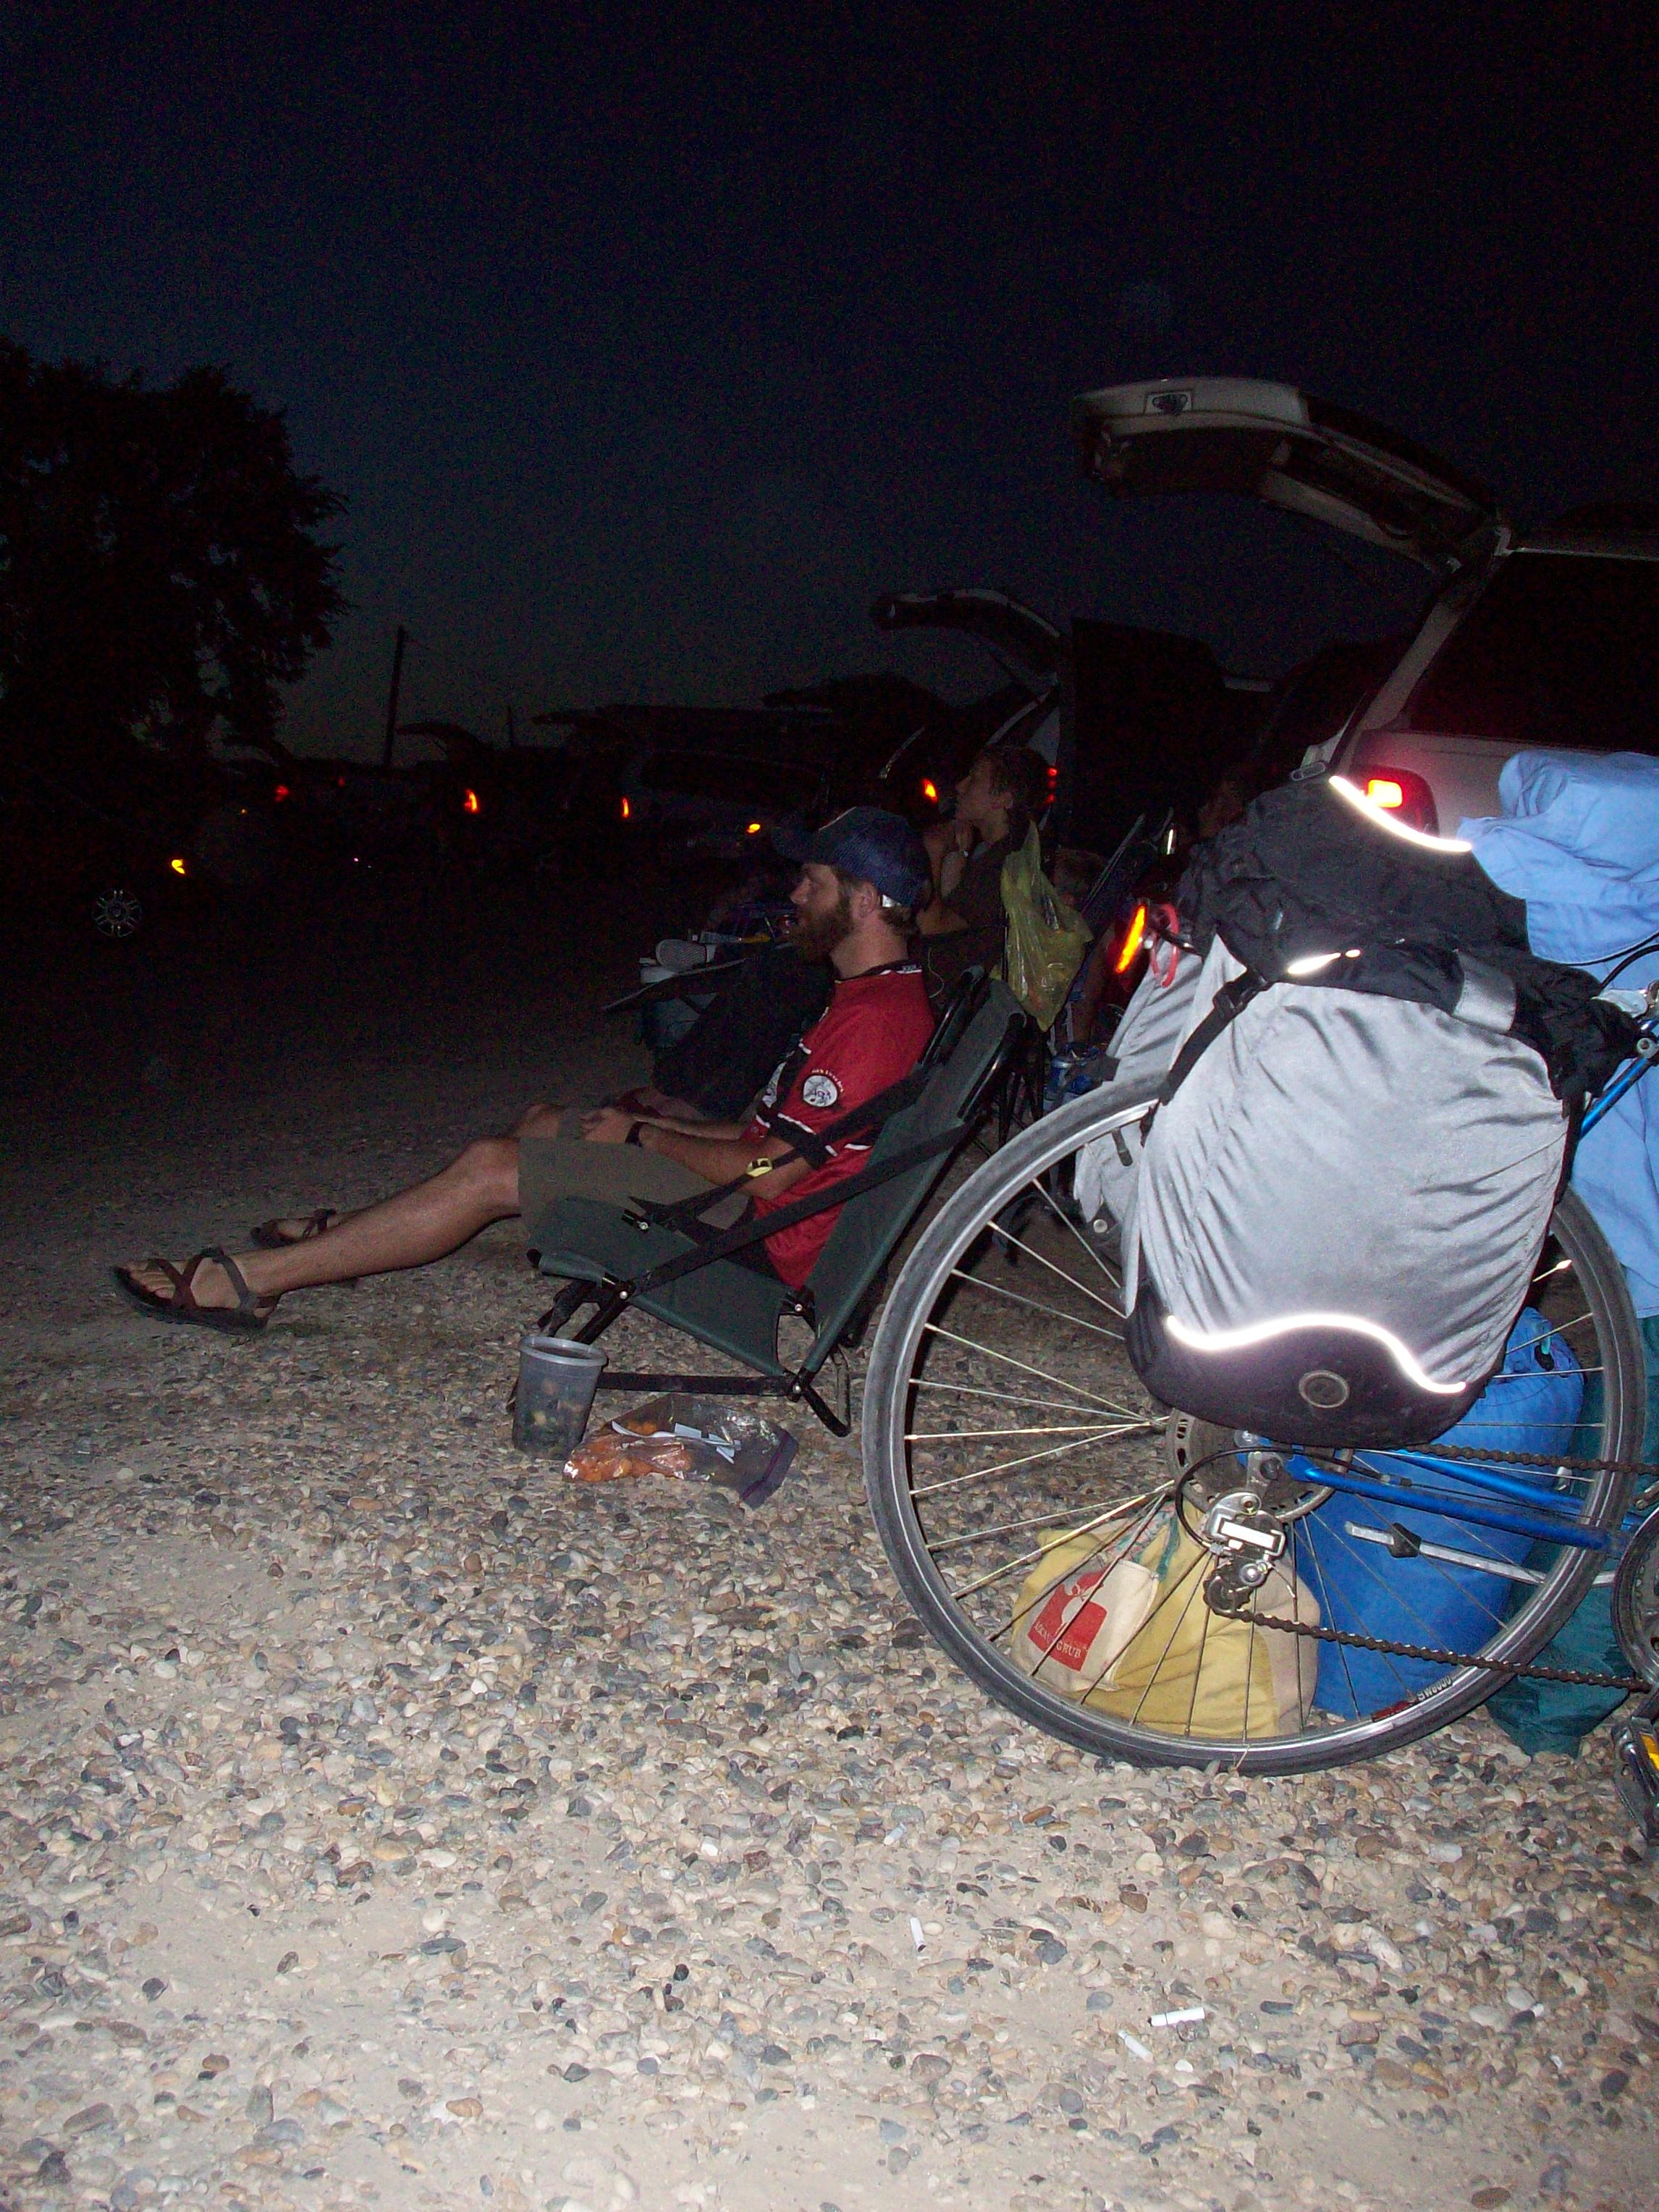 Bicycle Camping At The Parma Motor Vu Earthworm Envy